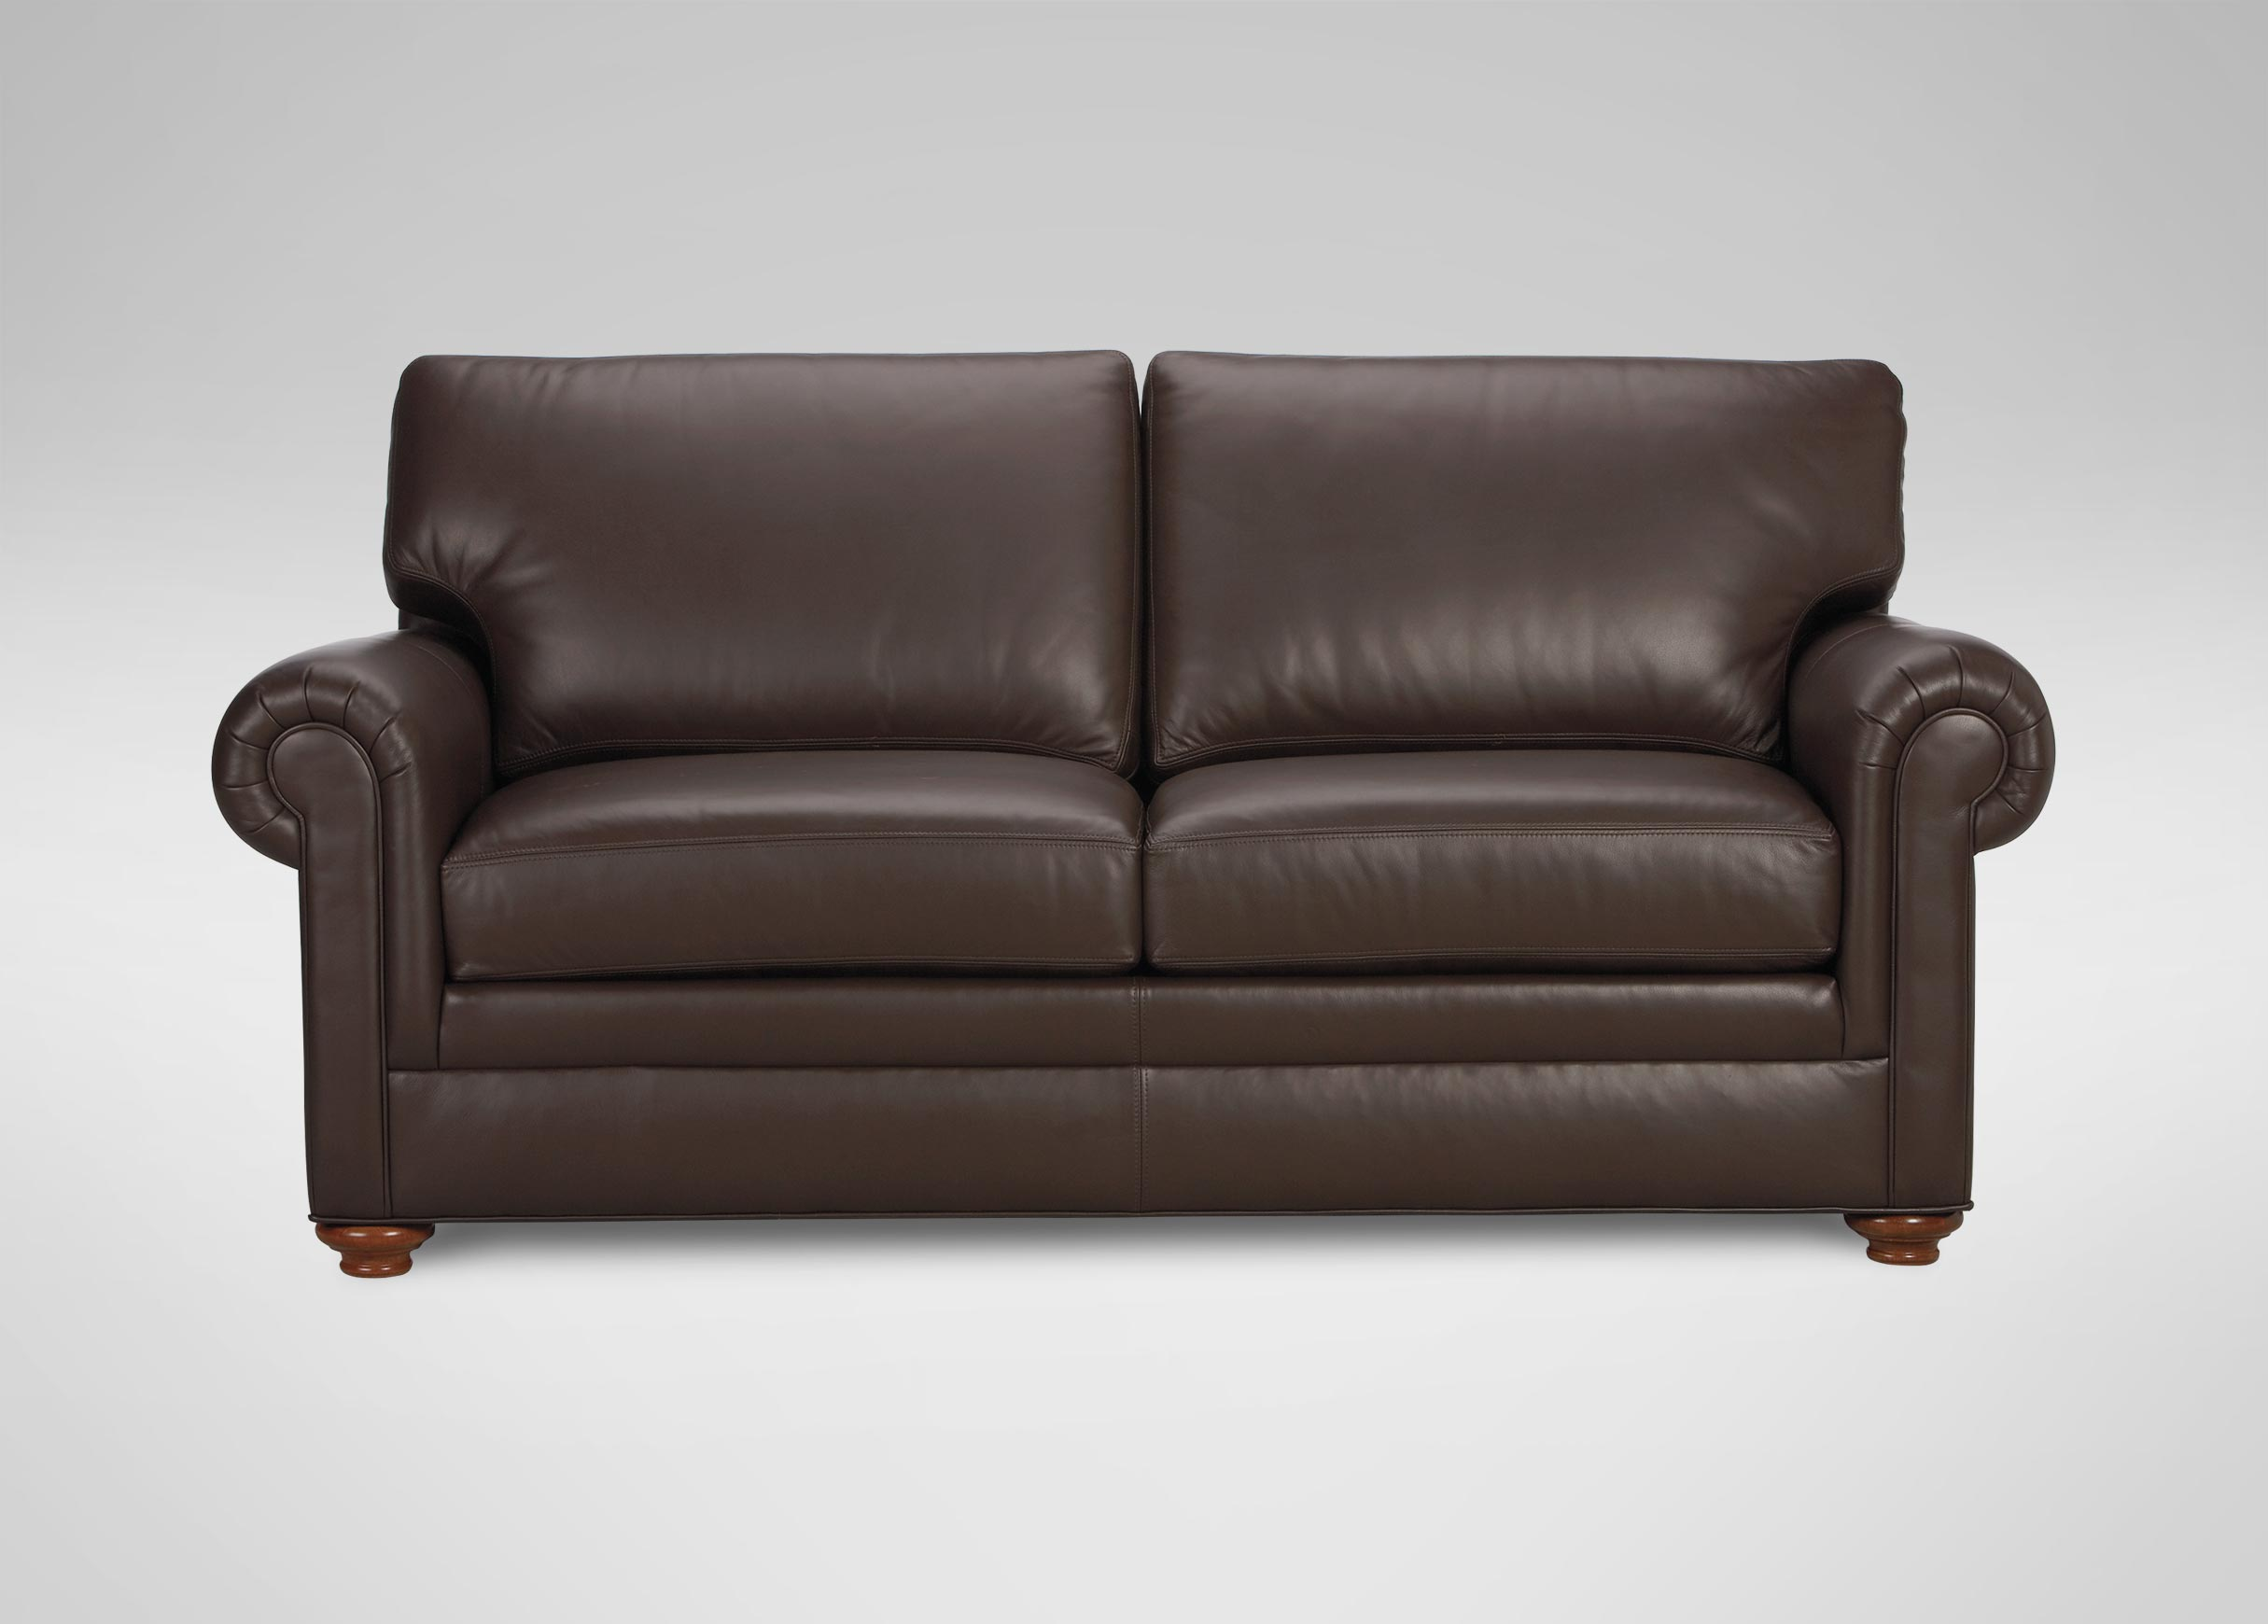 Conor leather sofa sofas loveseats for Couch and loveseat